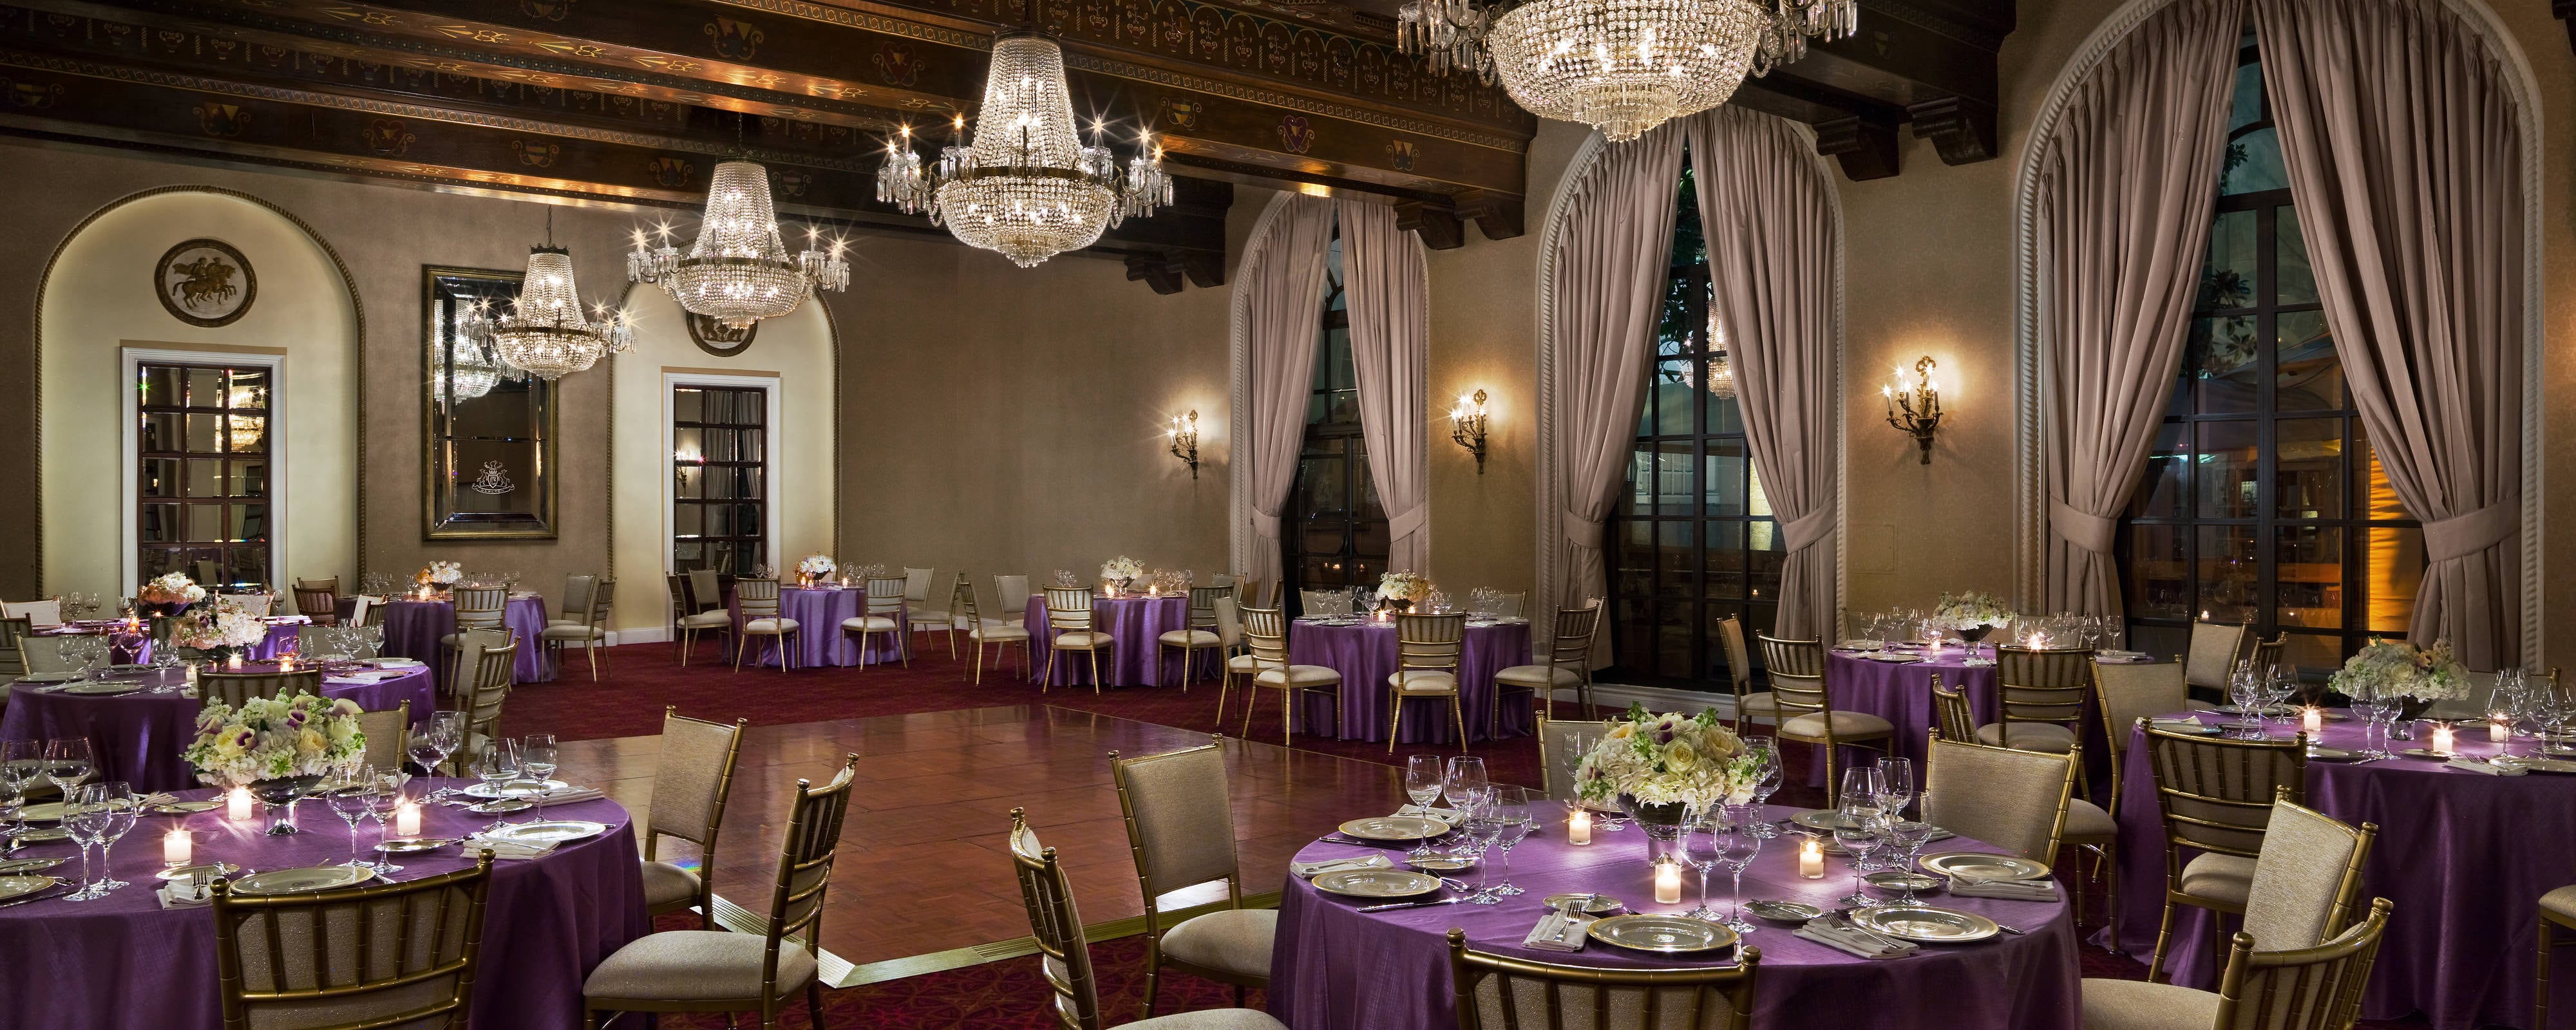 Washington D C Wedding Reception Venues The St Regis